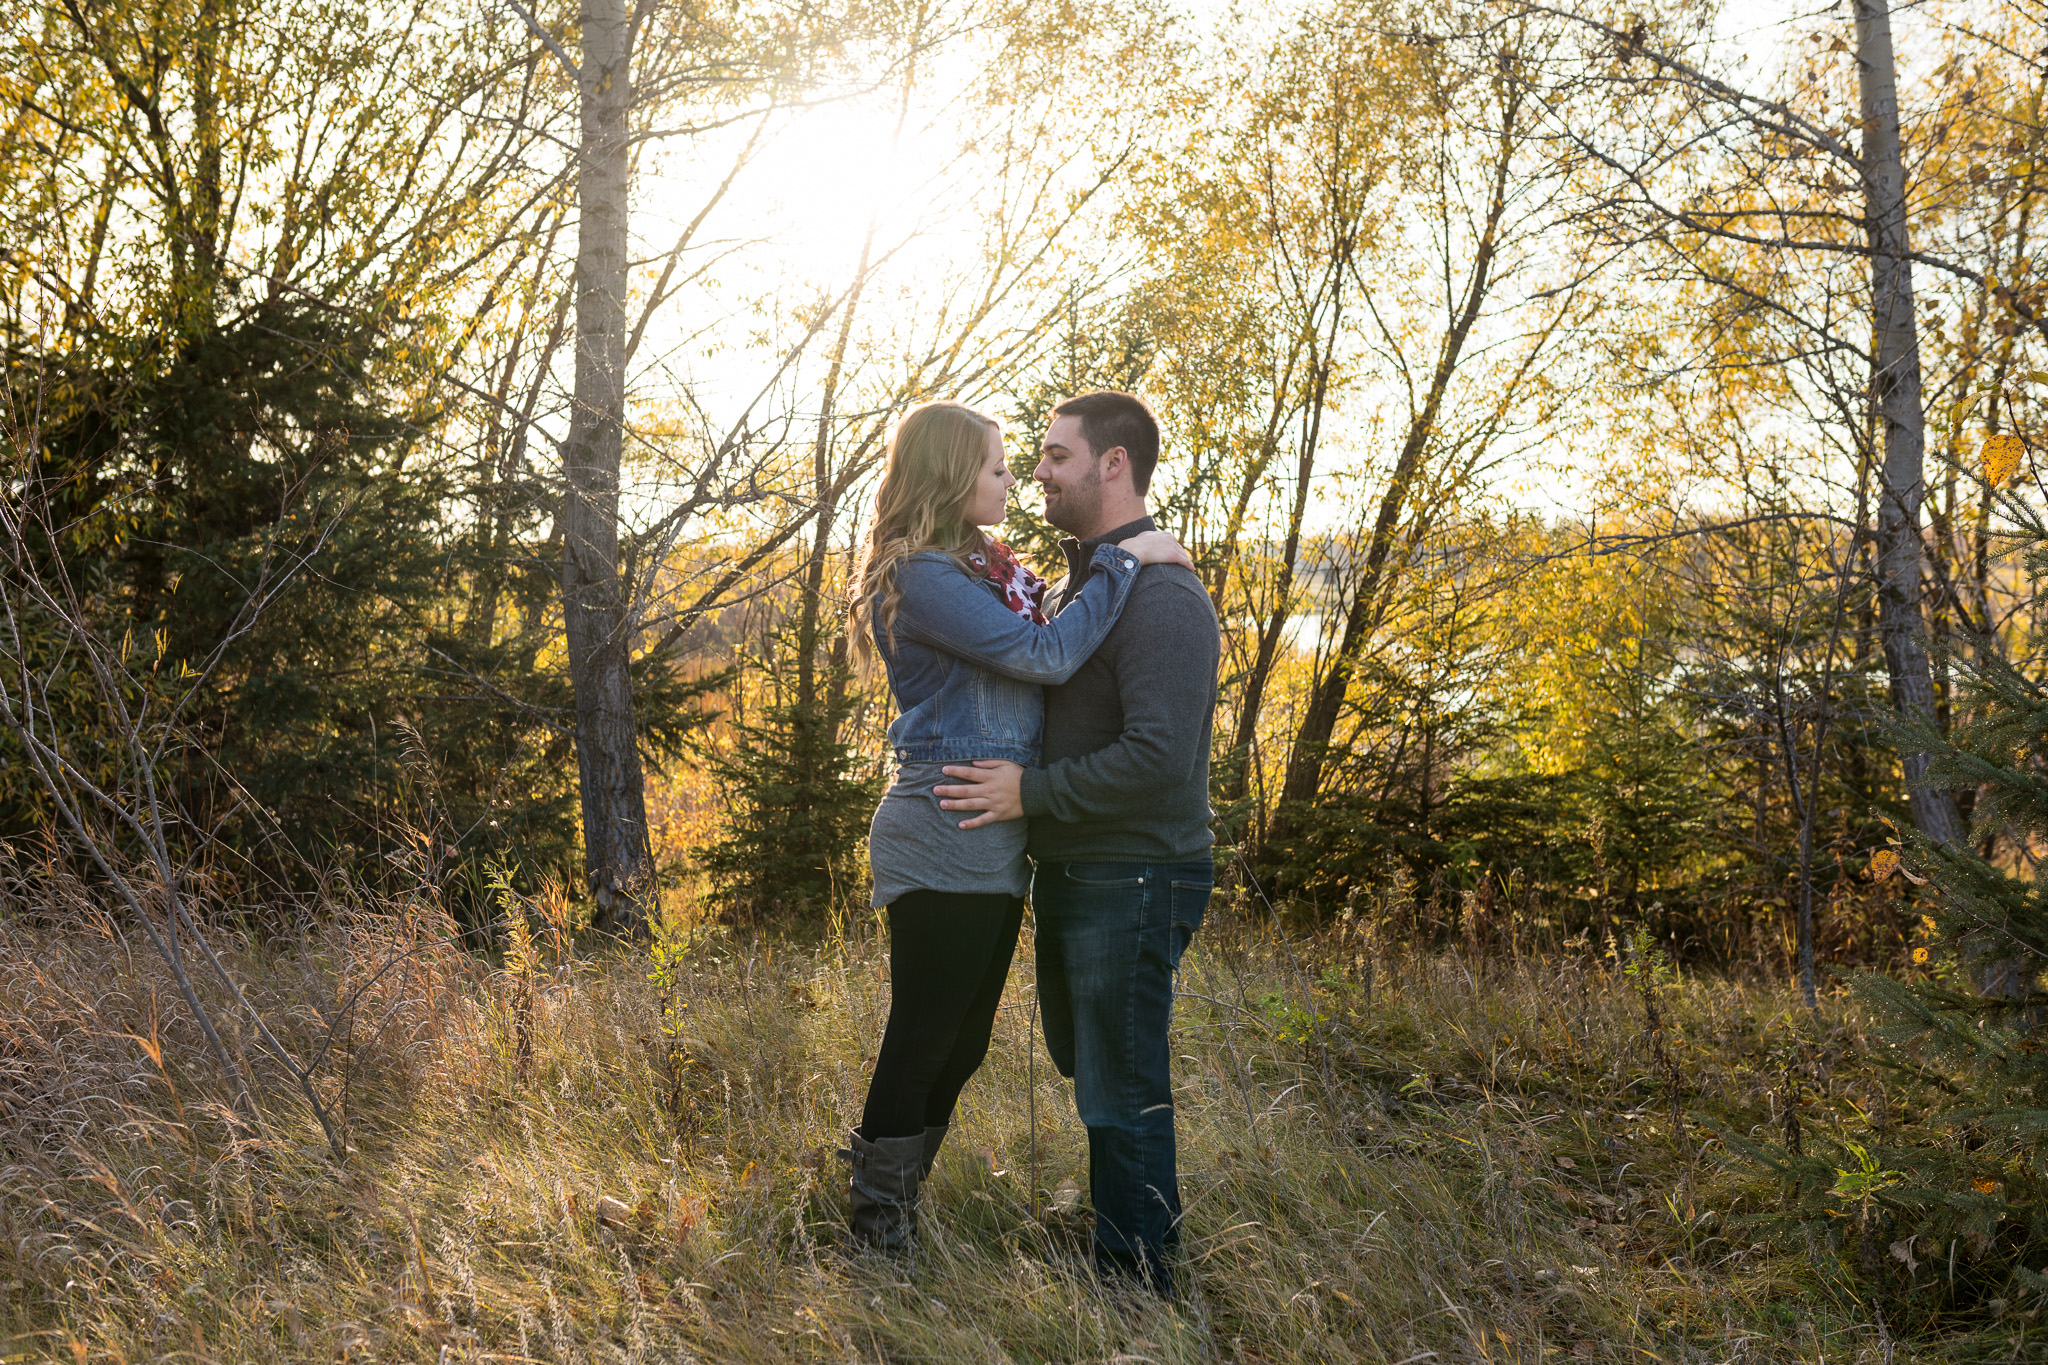 winnipeg-engagement-birdshill-park-1.jpg